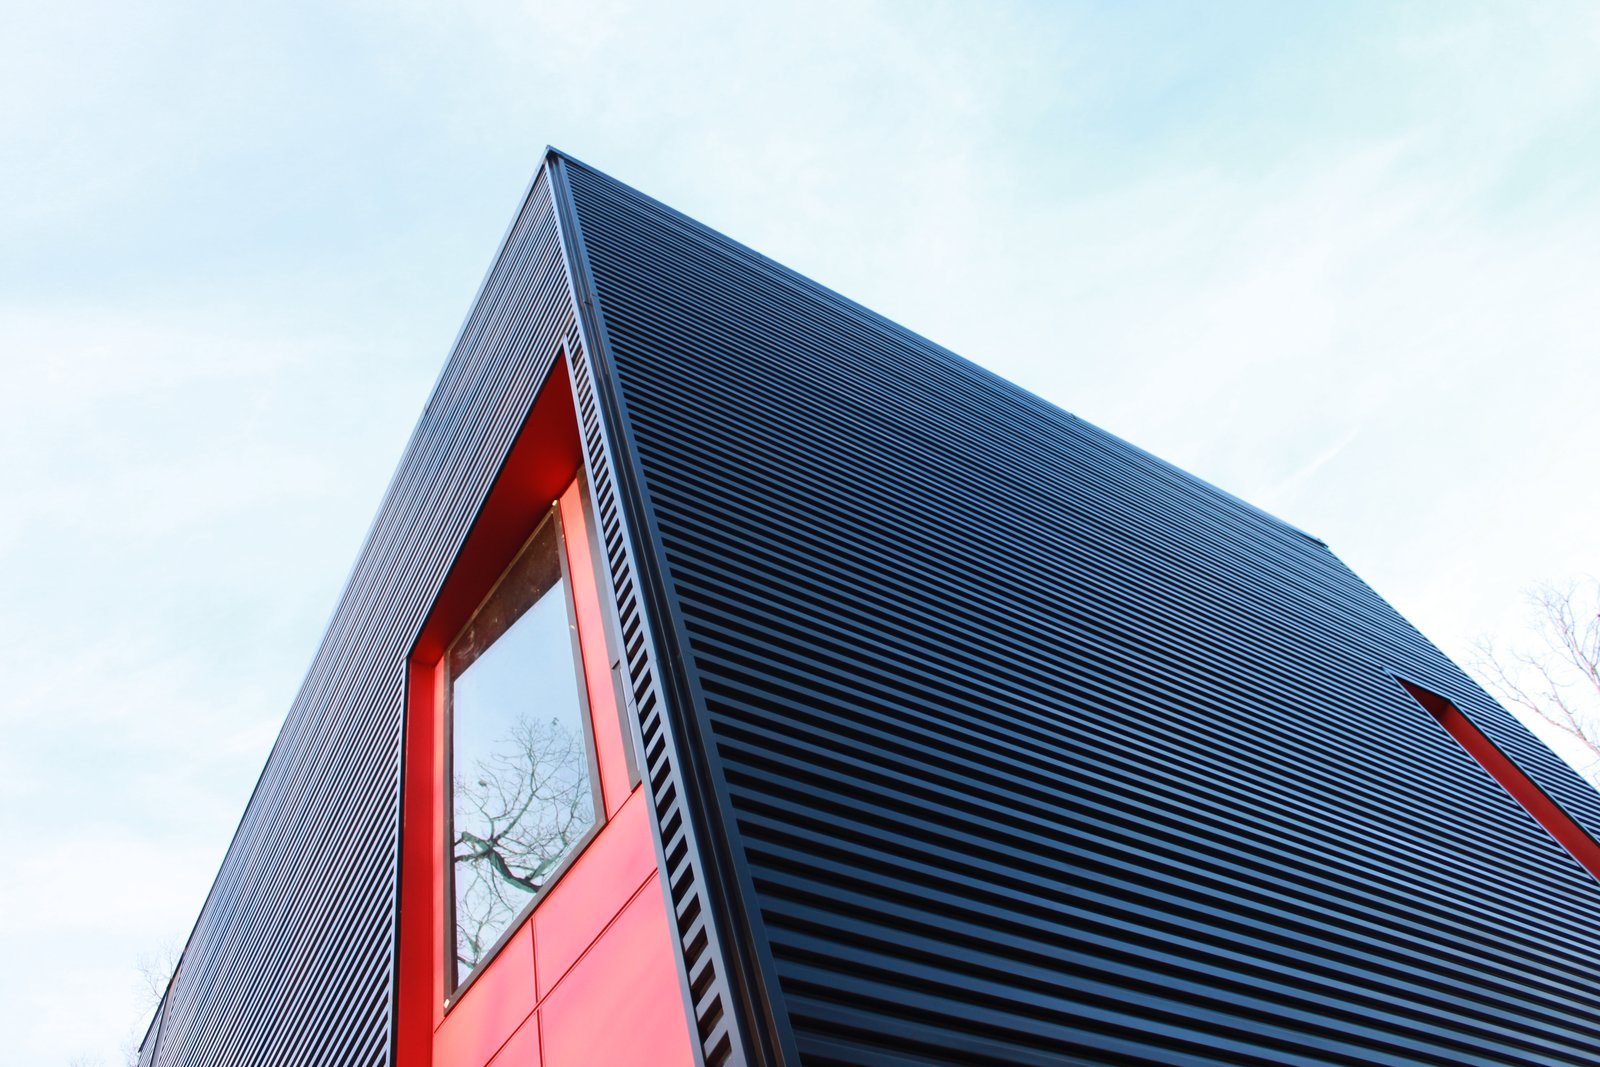 Exterior, Shed RoofLine, House Building Type, Metal Roof Material, and Metal Siding Material The 2-story black metal cube is sliced by red hot gashes.  The Woung House by Toby Witte